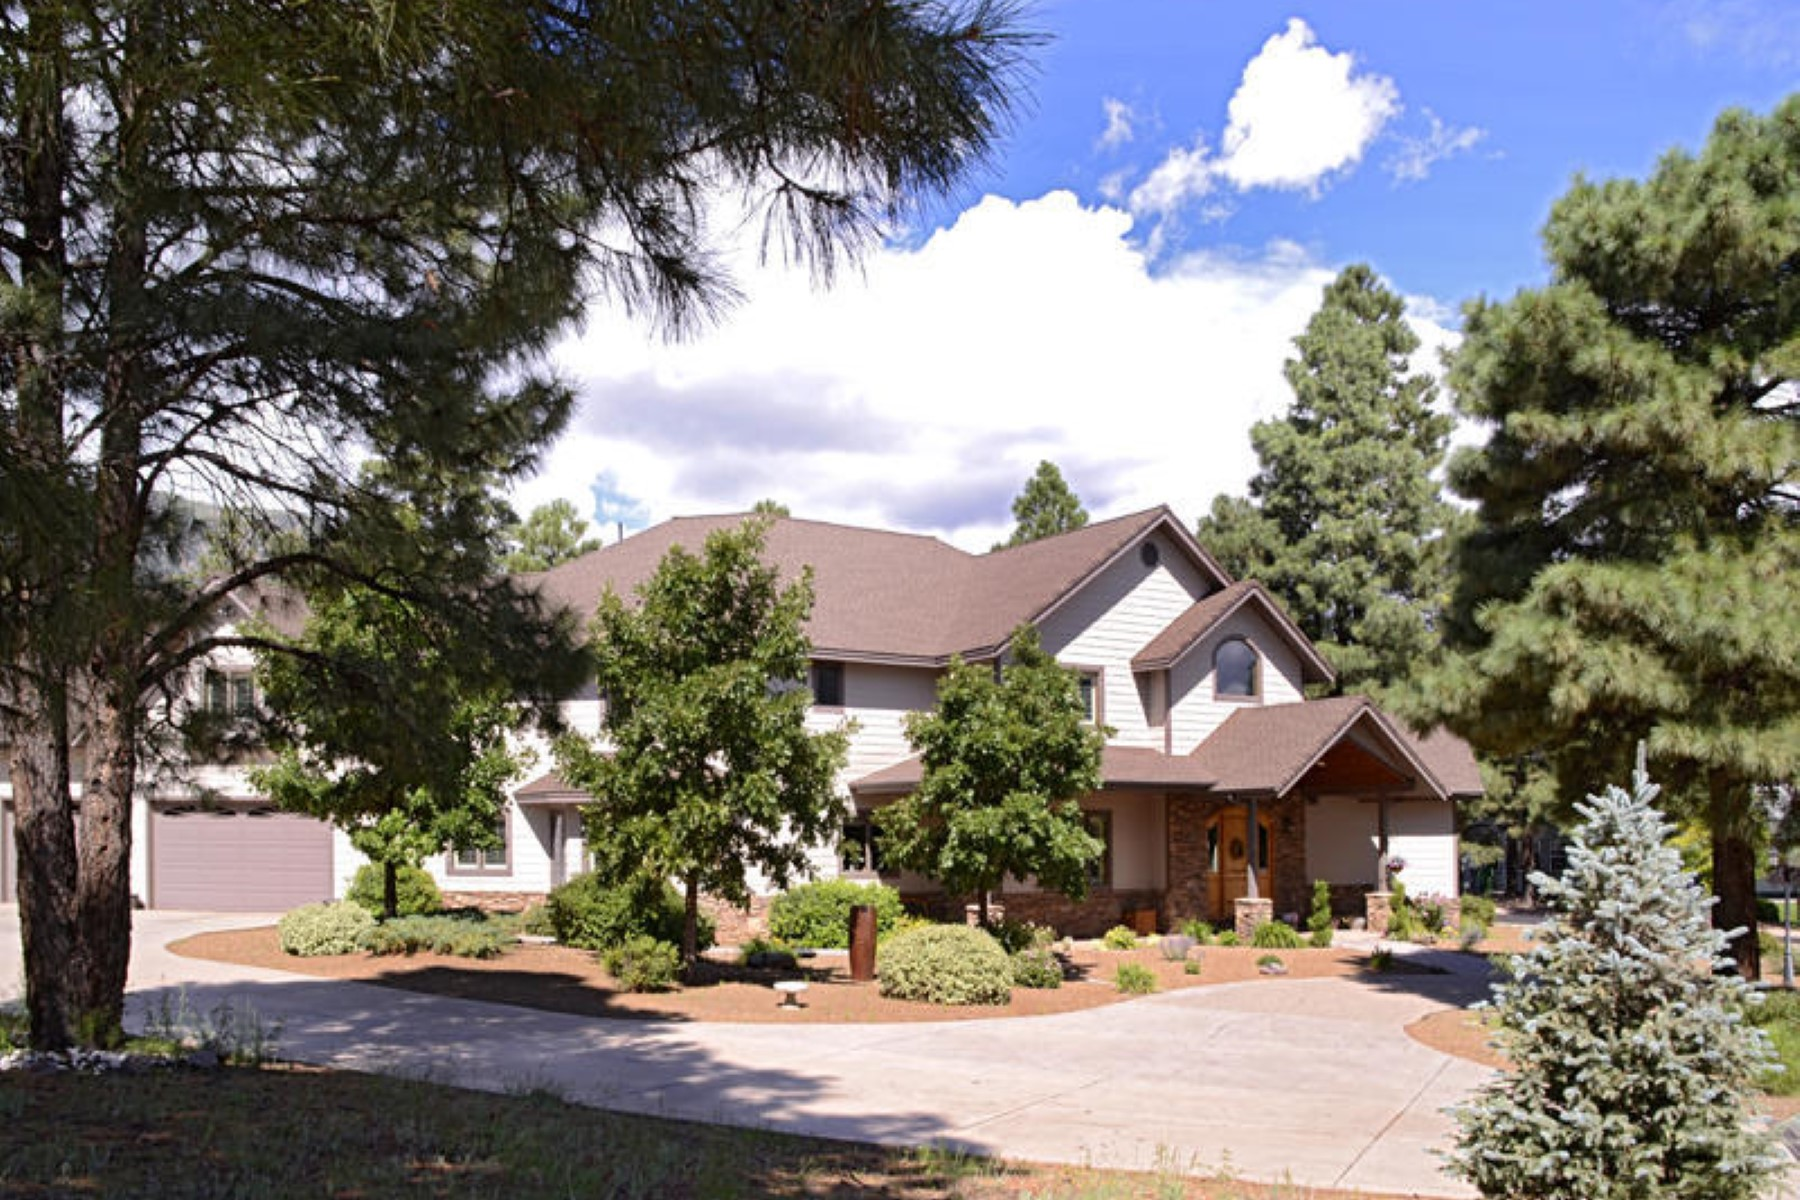 Maison unifamiliale pour l Vente à Forest Survey Tract 7050 N Oakwood Pines DR Flagstaff, Arizona, 86004 États-Unis